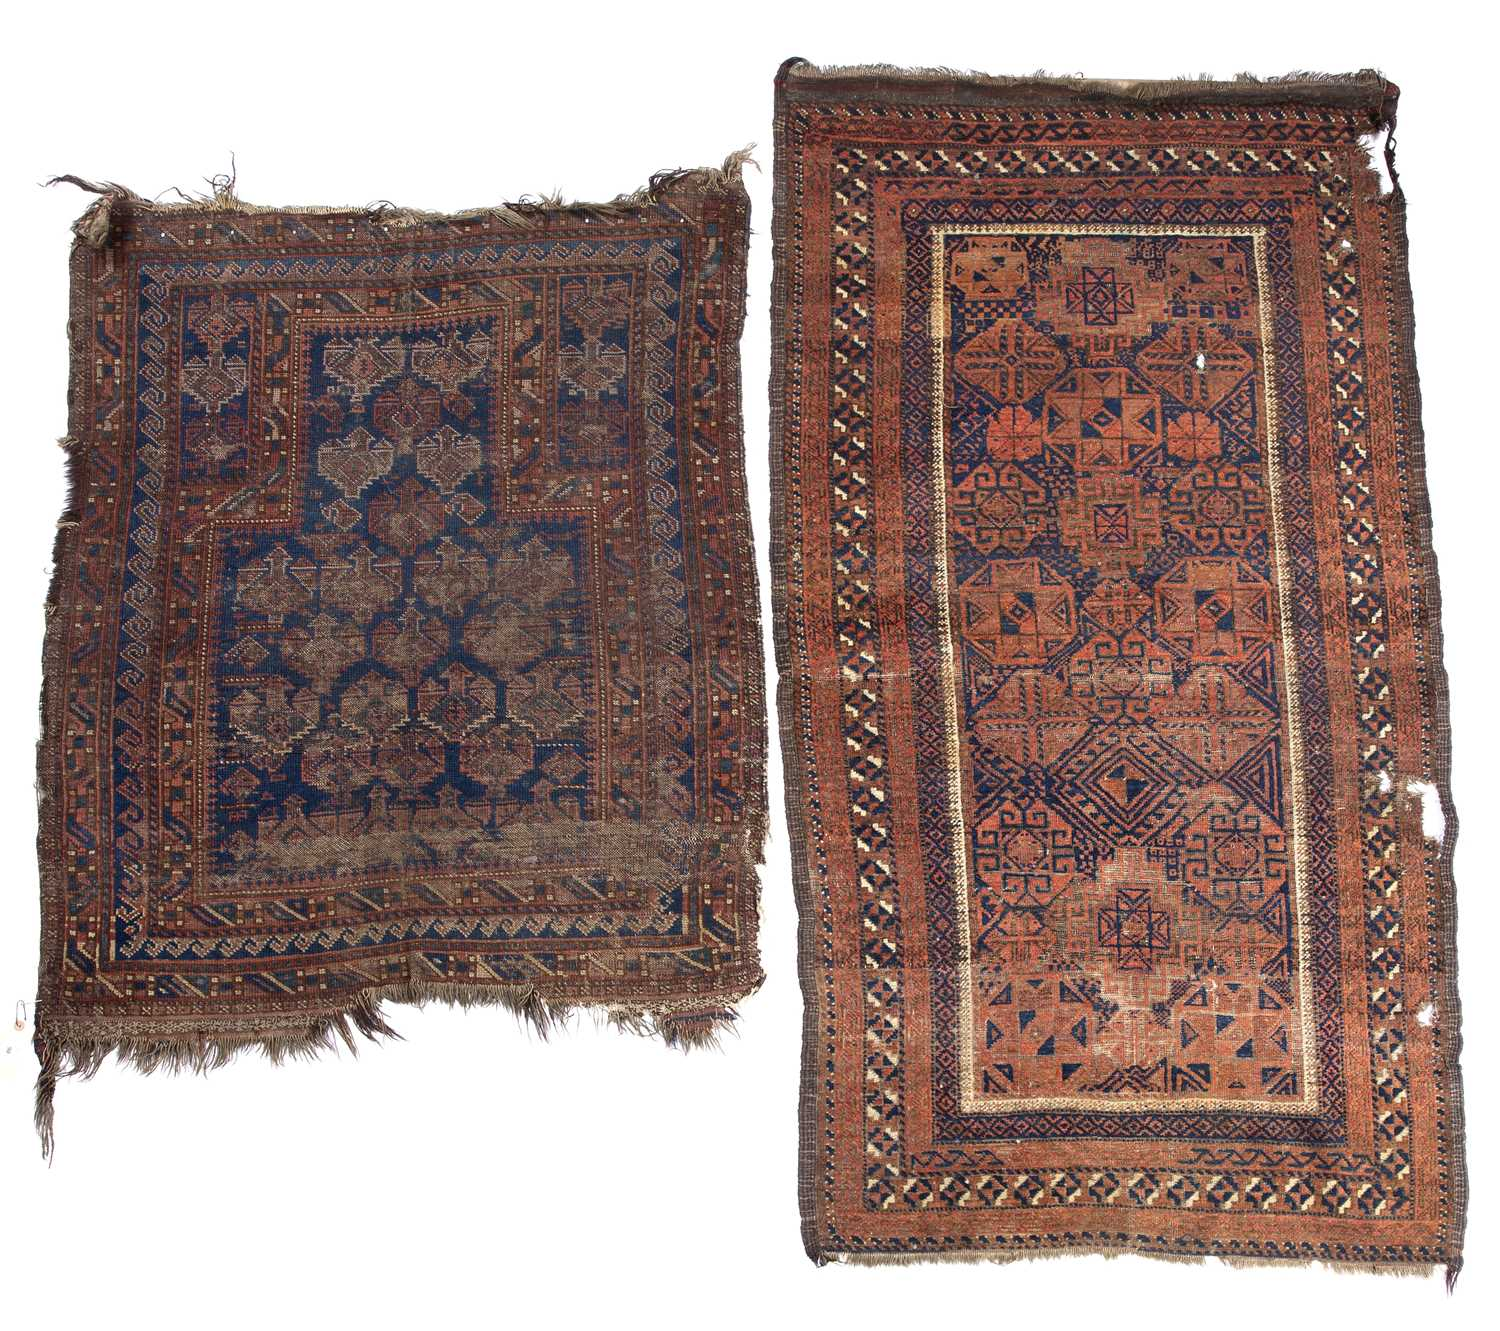 An old Belouch prayer rug with a central pattern of guls on a dark blue ground, 114 x 99cm and